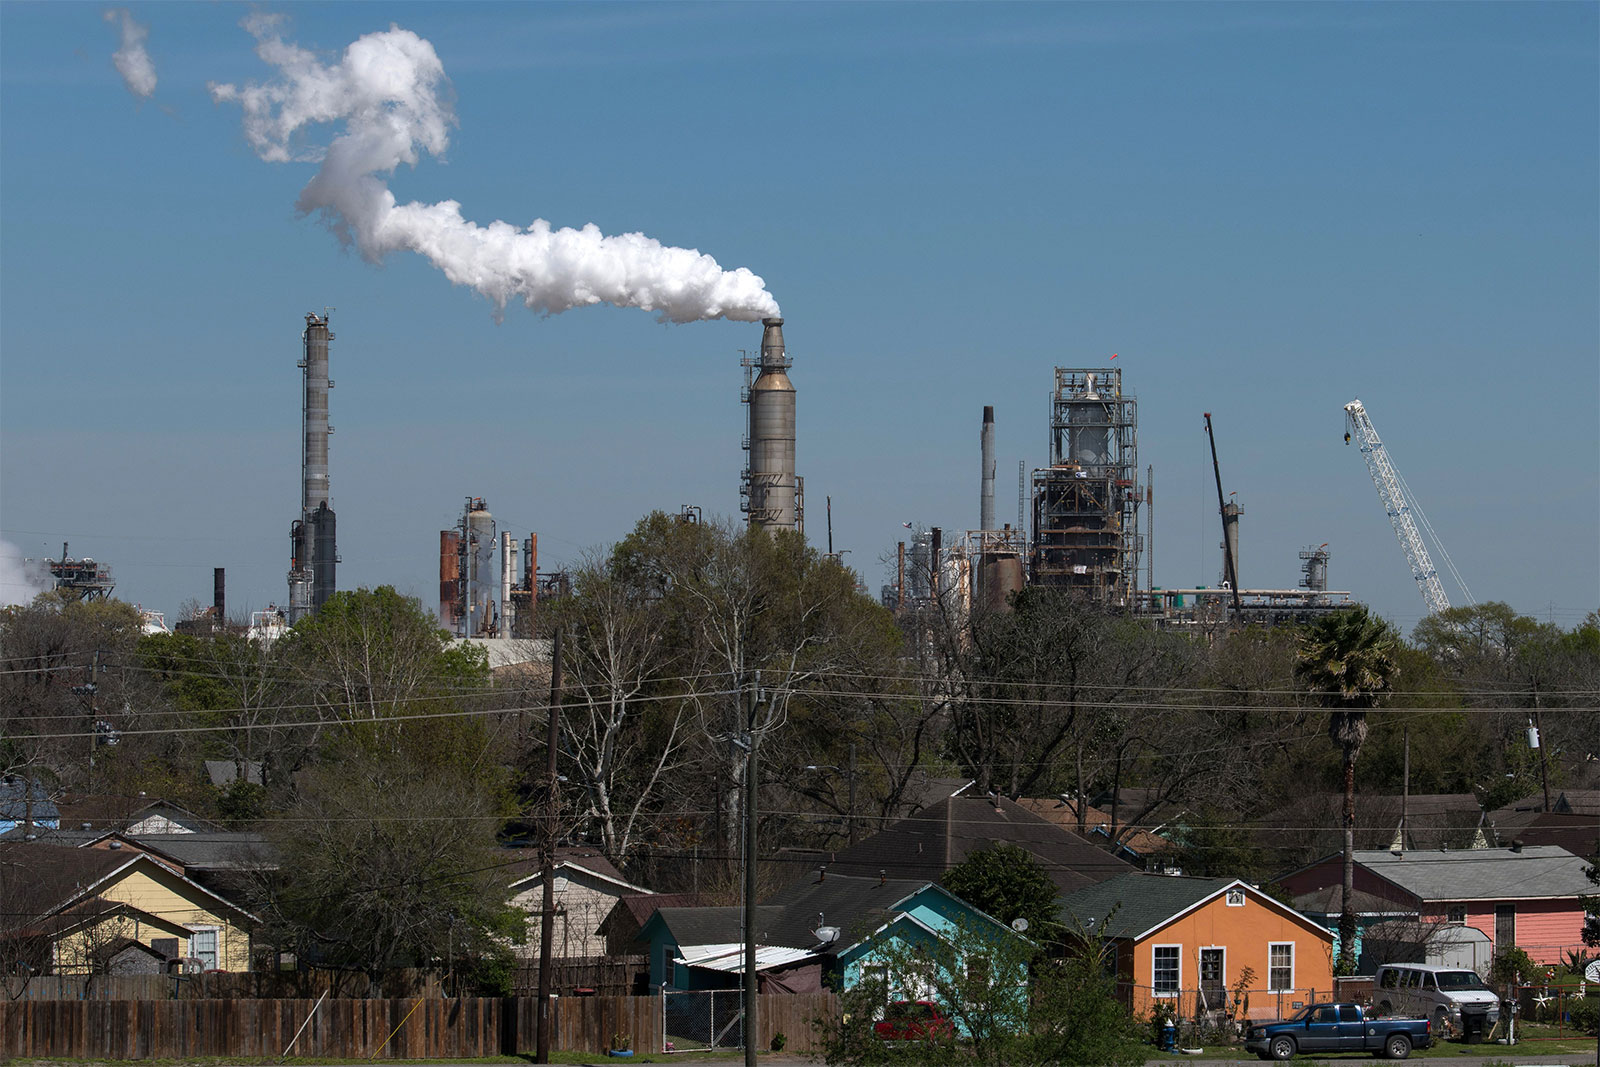 The Valero oil refinery near the Houston Ship Channel, part of the Port of Houston, on March 6, 2019 in Houston, Texas